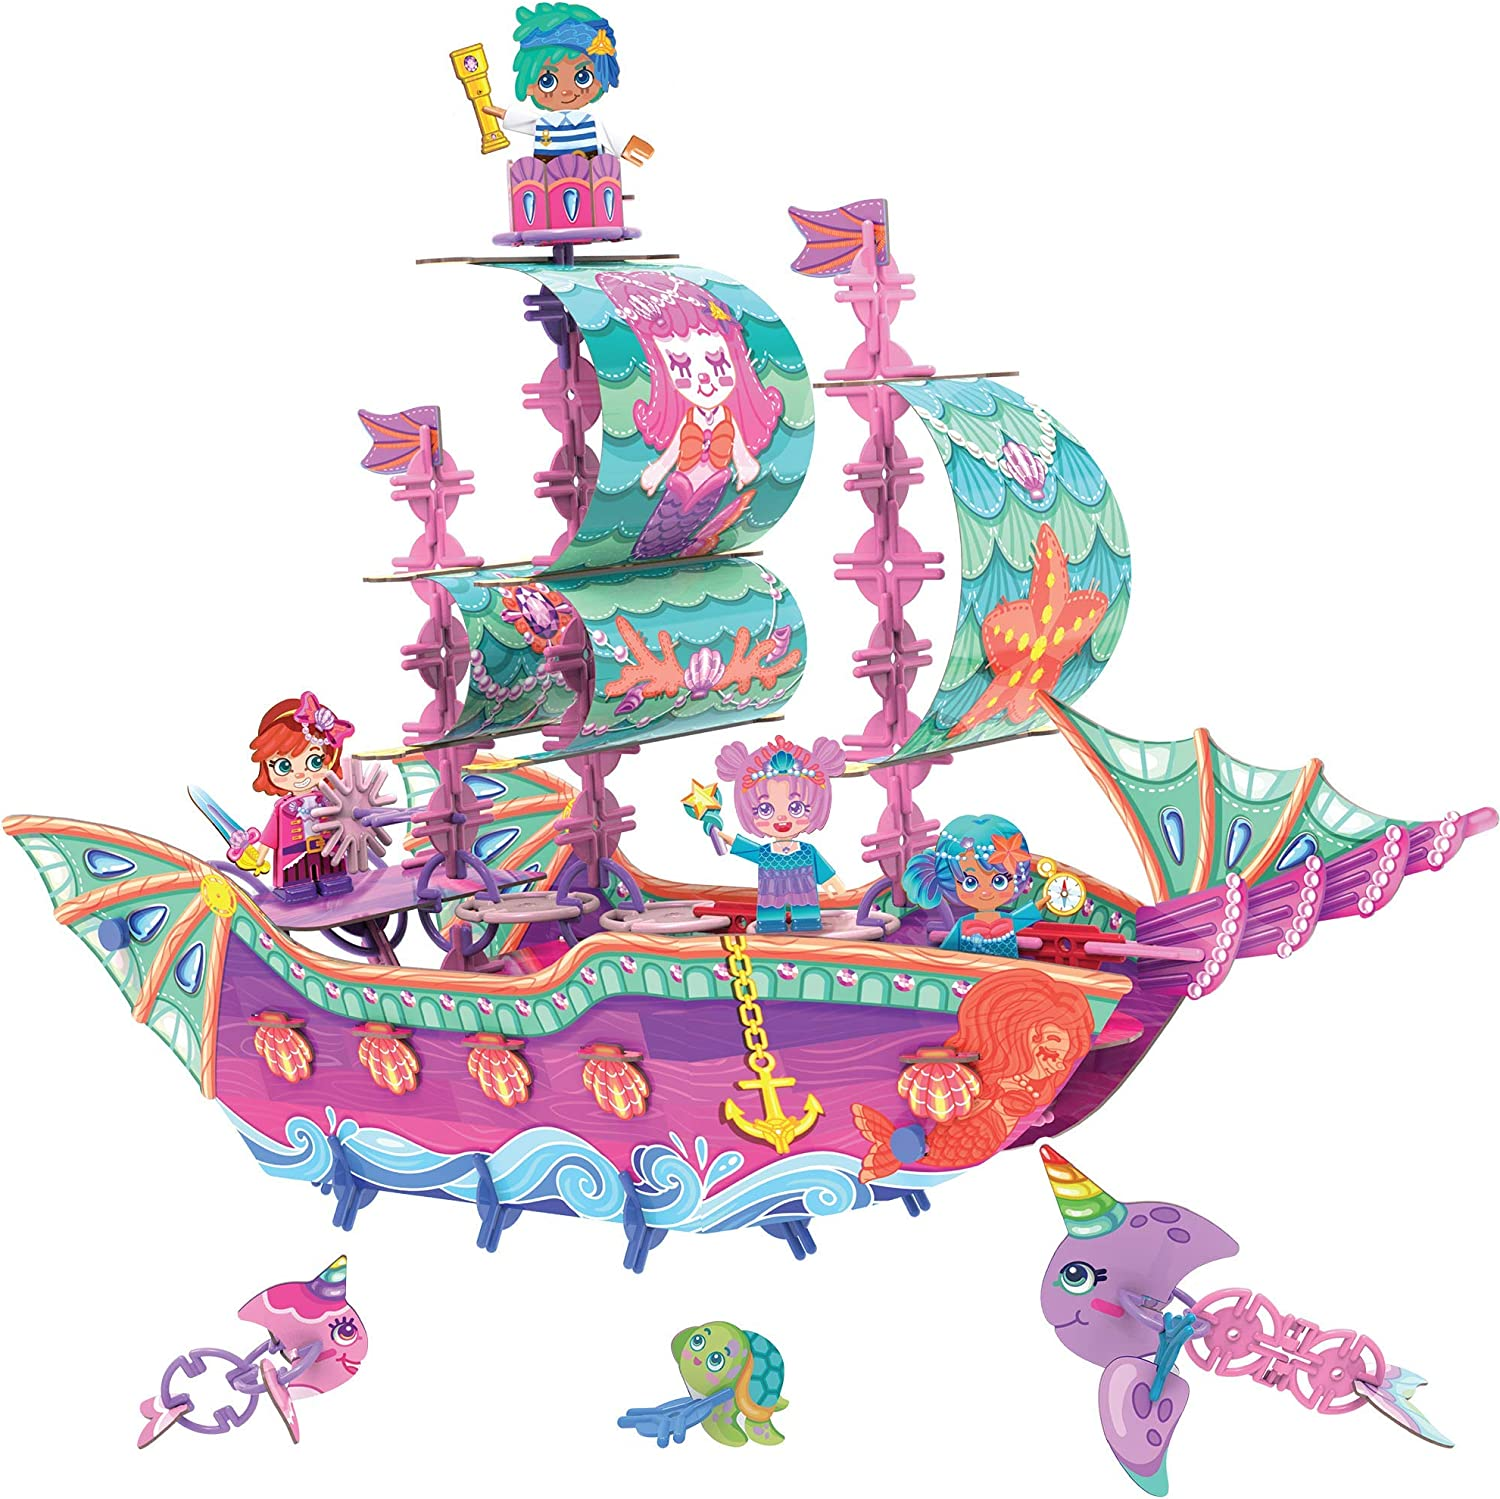 PINXIES Marvelous Mermaid Ship Kids Play Set, Build-Your-Own Magical Toy - STEM Toy for Girls Ages 6-10